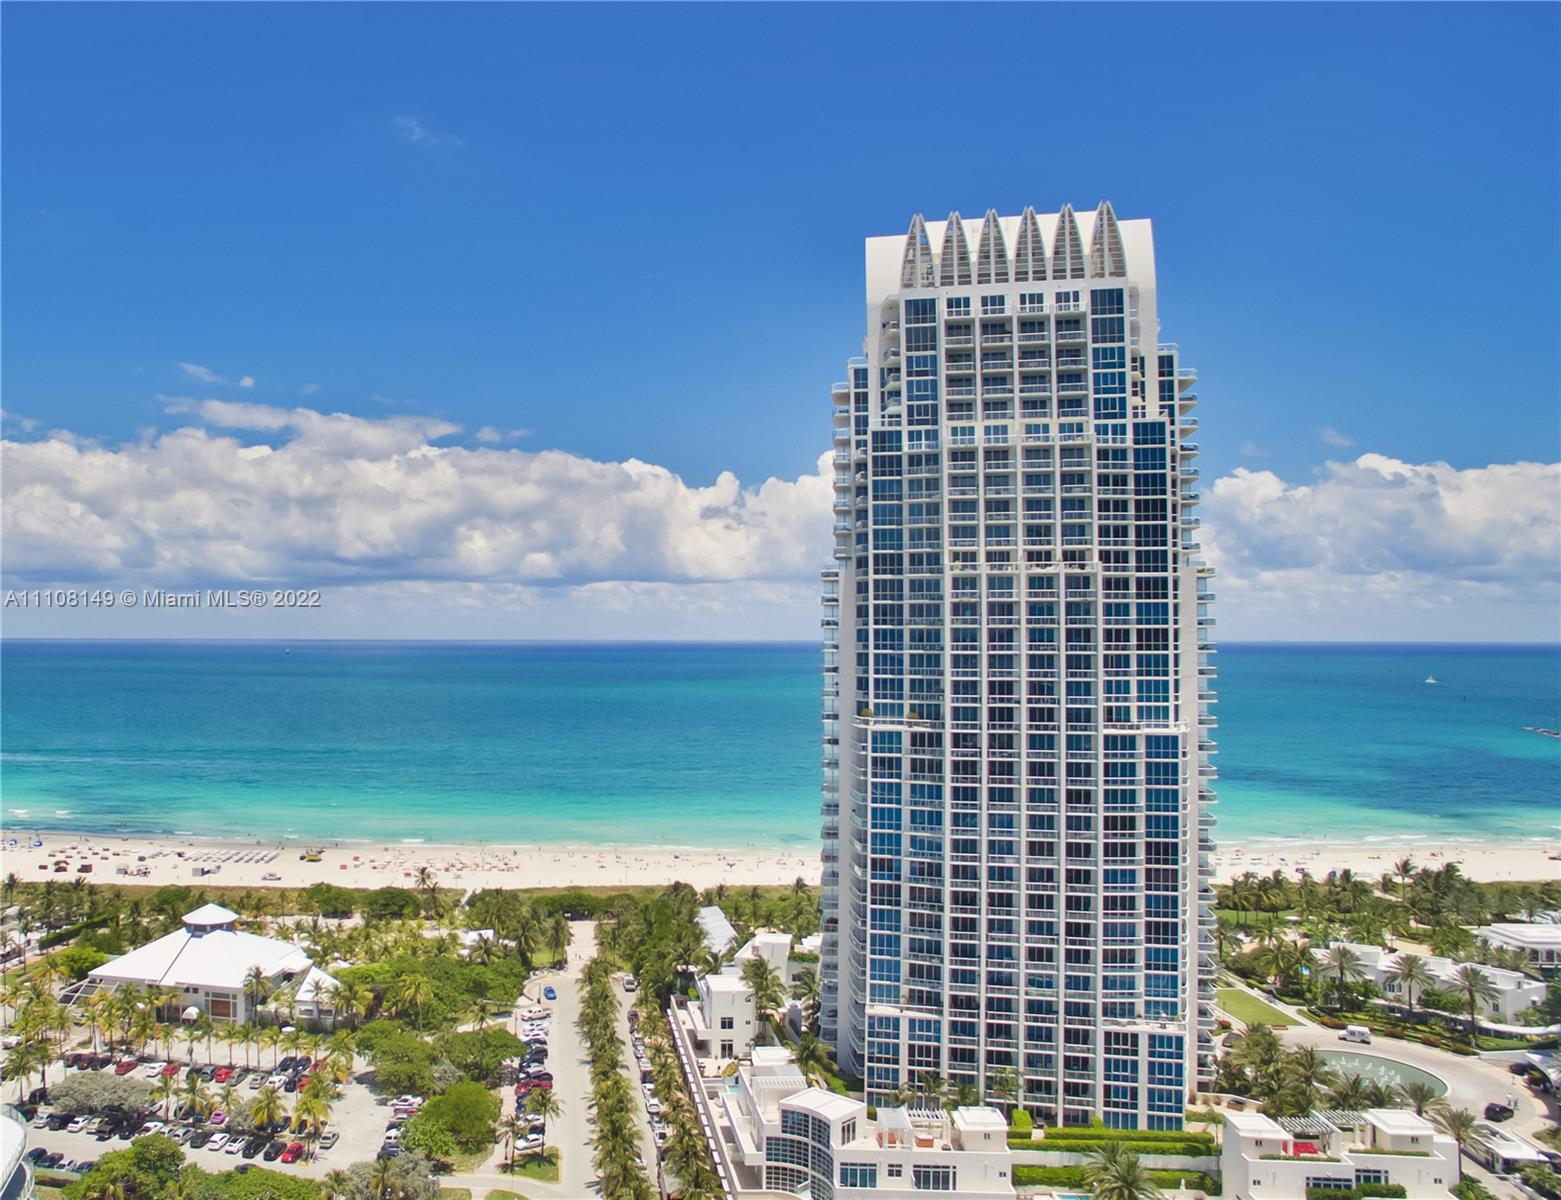 Amazing opportunity to create a one-of-a-kind custom designed four-bedroom apartment with approximately 3,500 sf of living space located on the 25th floor. Enjoy unobstructed ocean views and sunset Miami skyline views from the northwest corner of the Continuum North Tower. The Continuum is the largest oceanfront community in Miami Beach and sits on 13+ acres, with three swimming pool, tennis club, spa and fitness center, café, and full beach services. Units are only being sold as a combo.